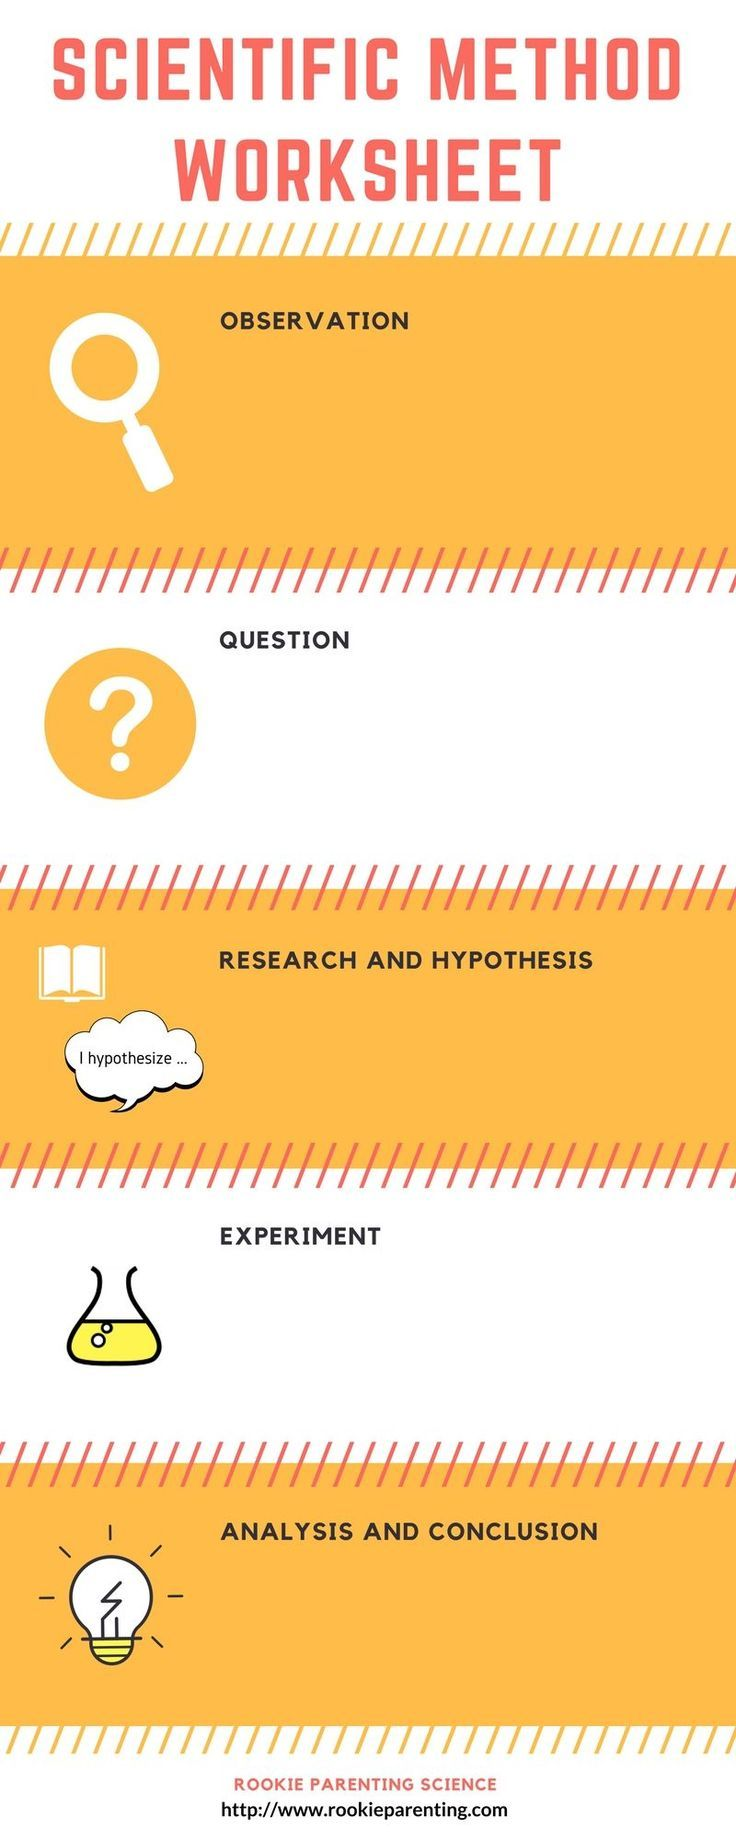 scientific method steps, examples & worksheet - zoey and sassafras